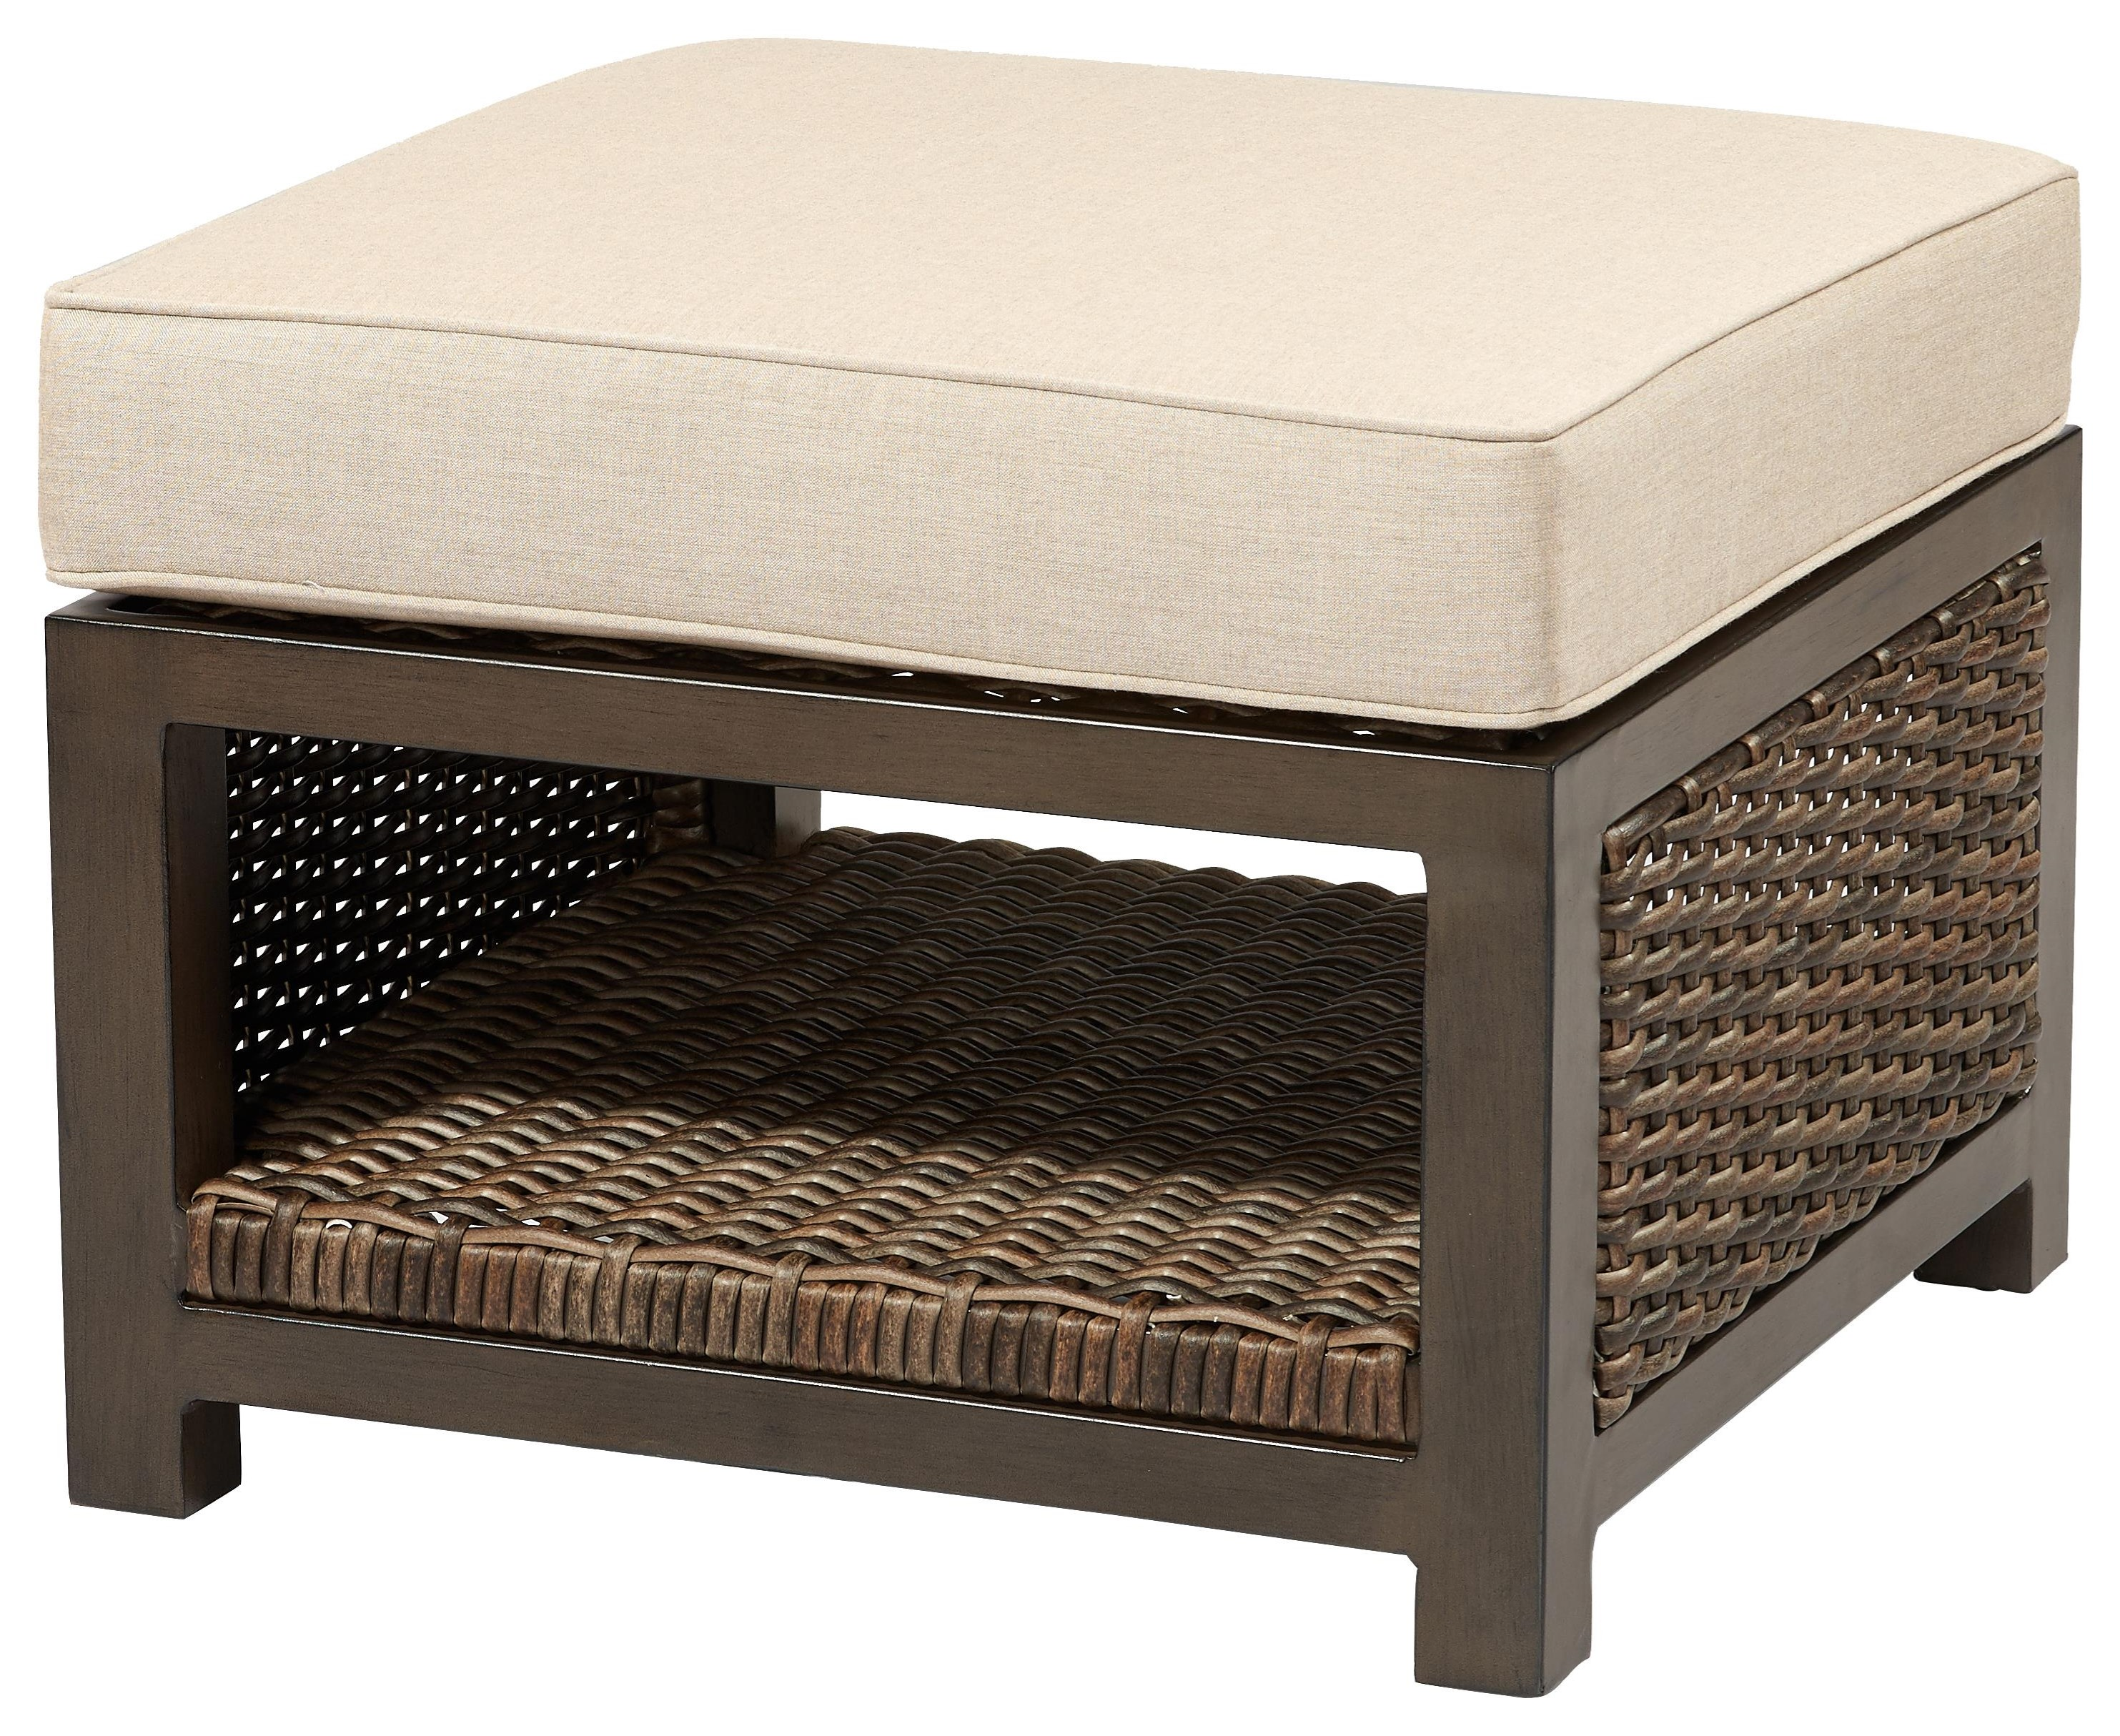 Trenton Ottoman by Apricity Outdoor at Johnny Janosik